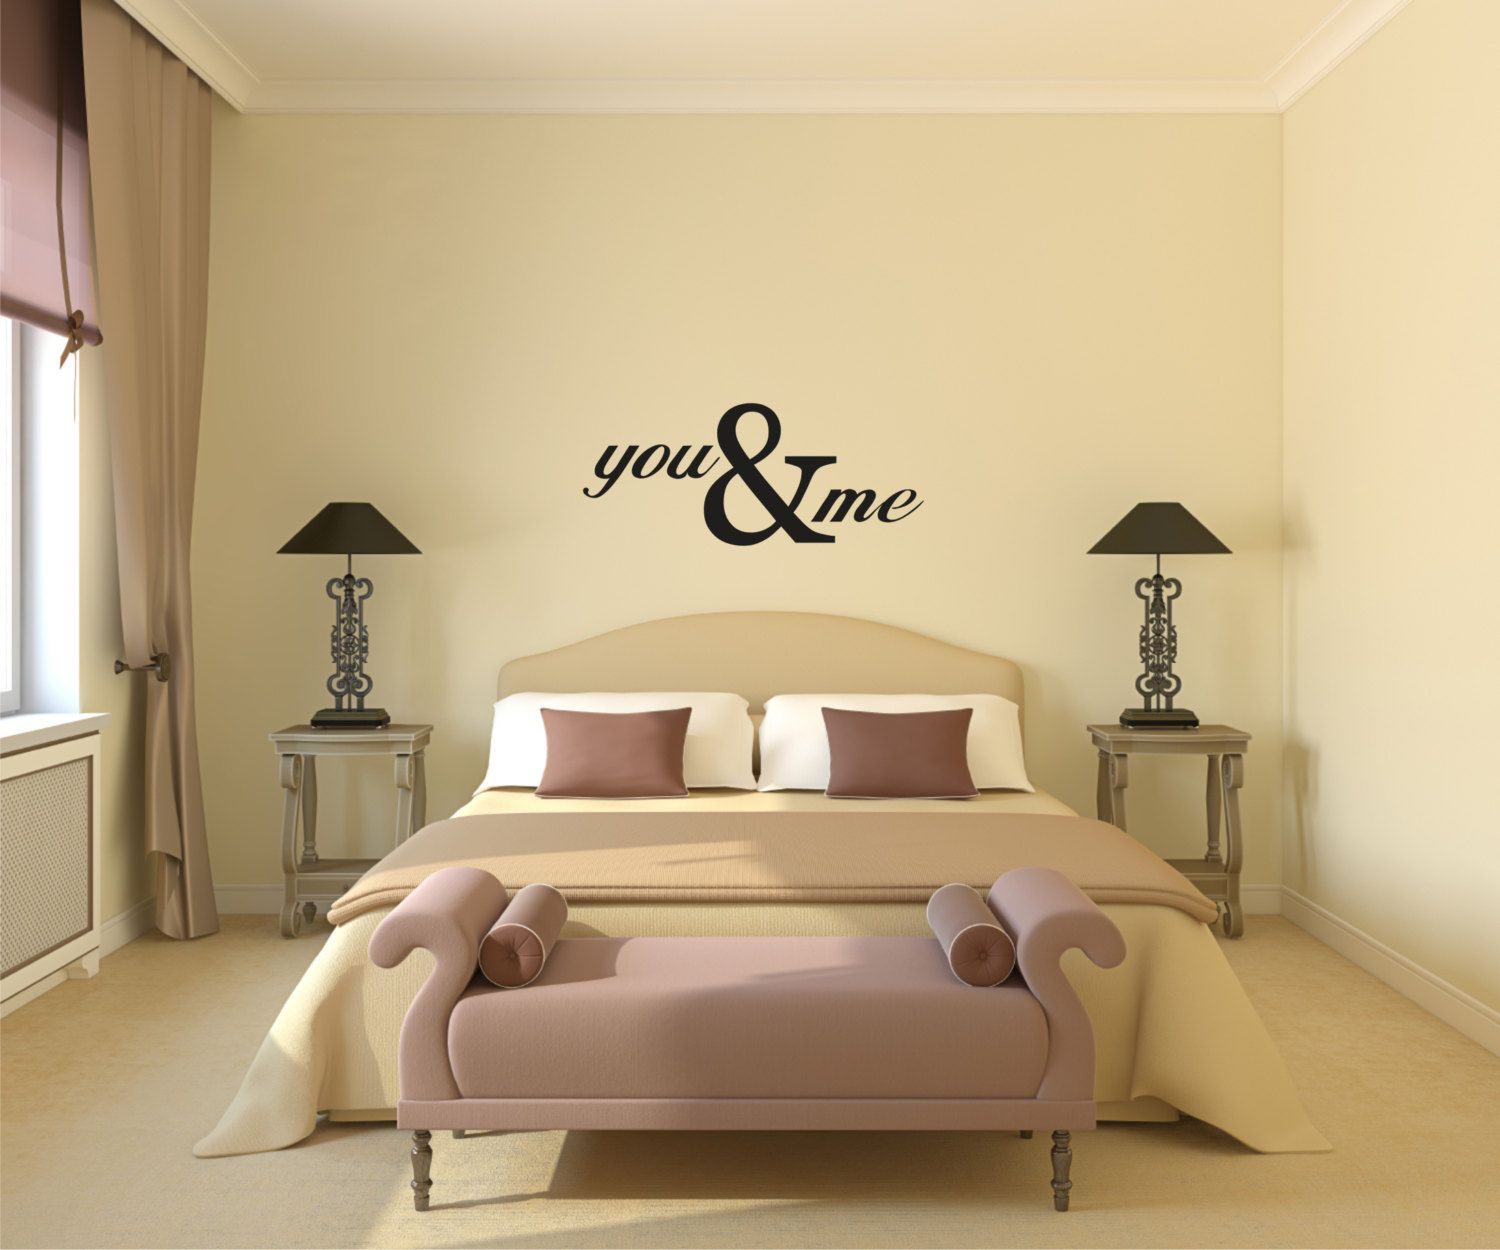 Vinyl Wall Decal You & Me - Love Vinyl Wall Decal - You and Me ...